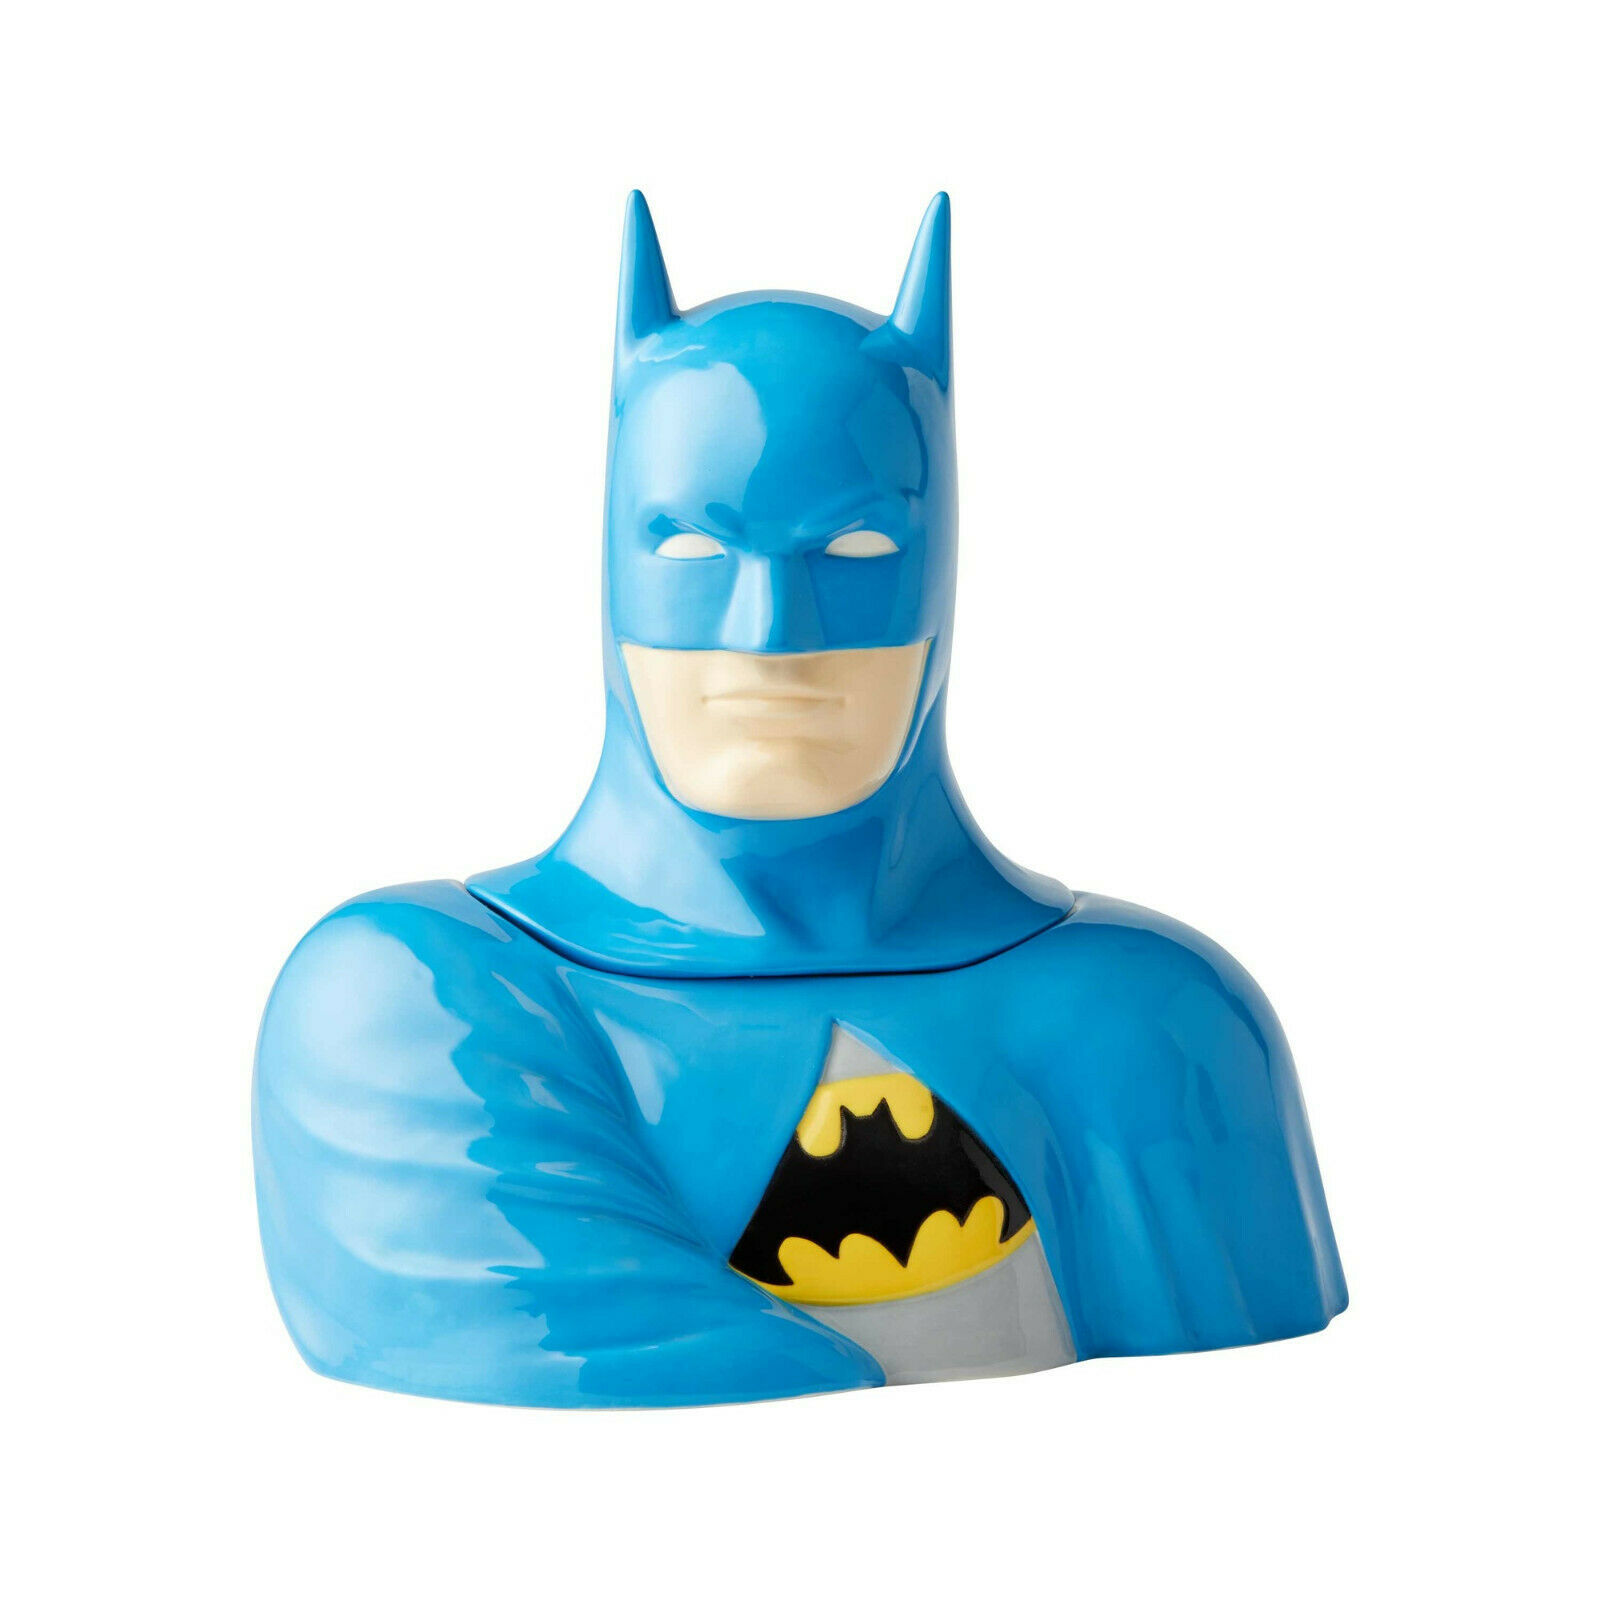 "10.5"" High DC Comic Batman Stoneware Cookie Jar Celebrates 80th Anniversary"